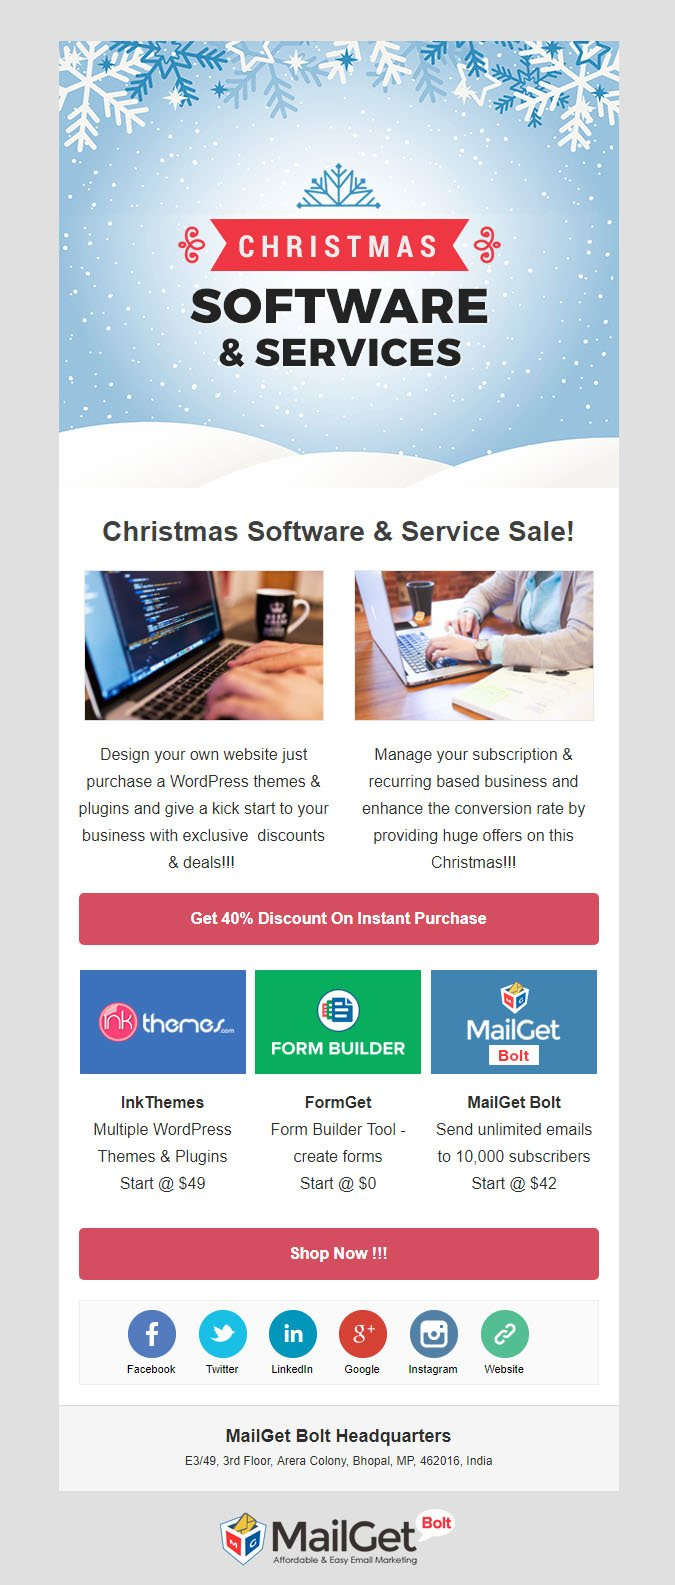 Software & Services Christmas Email Templates